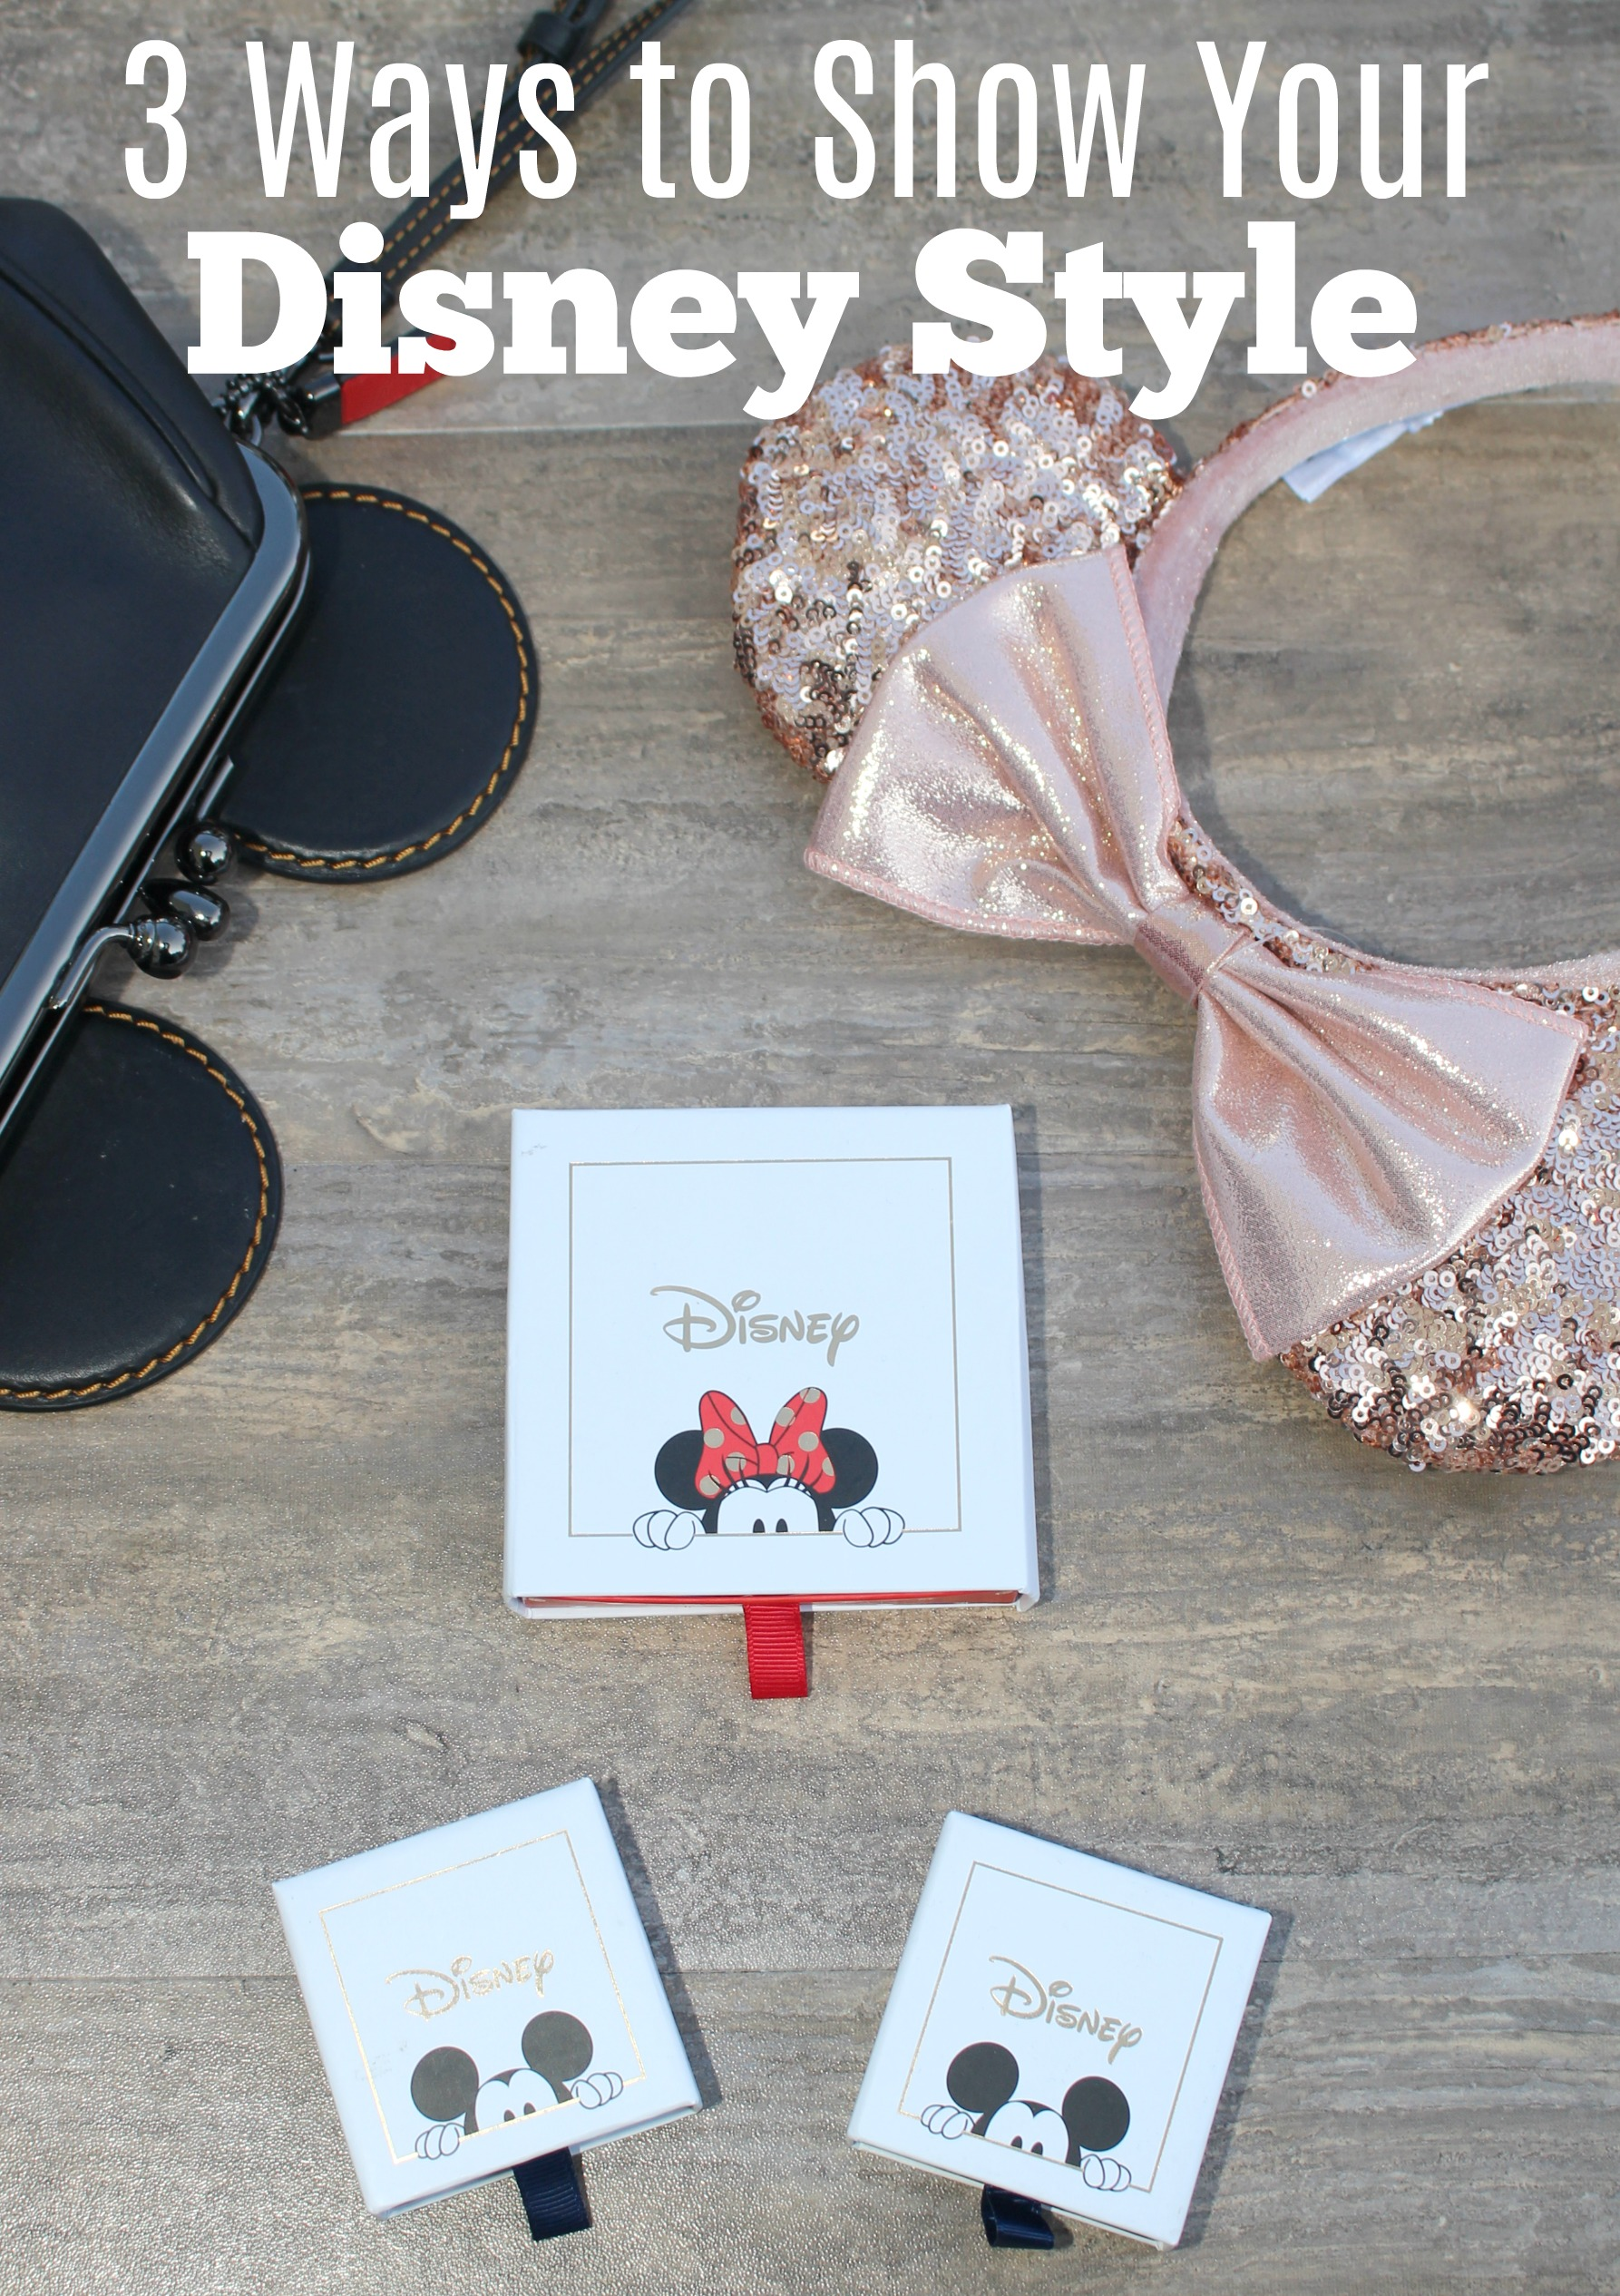 Show Your Disney Style